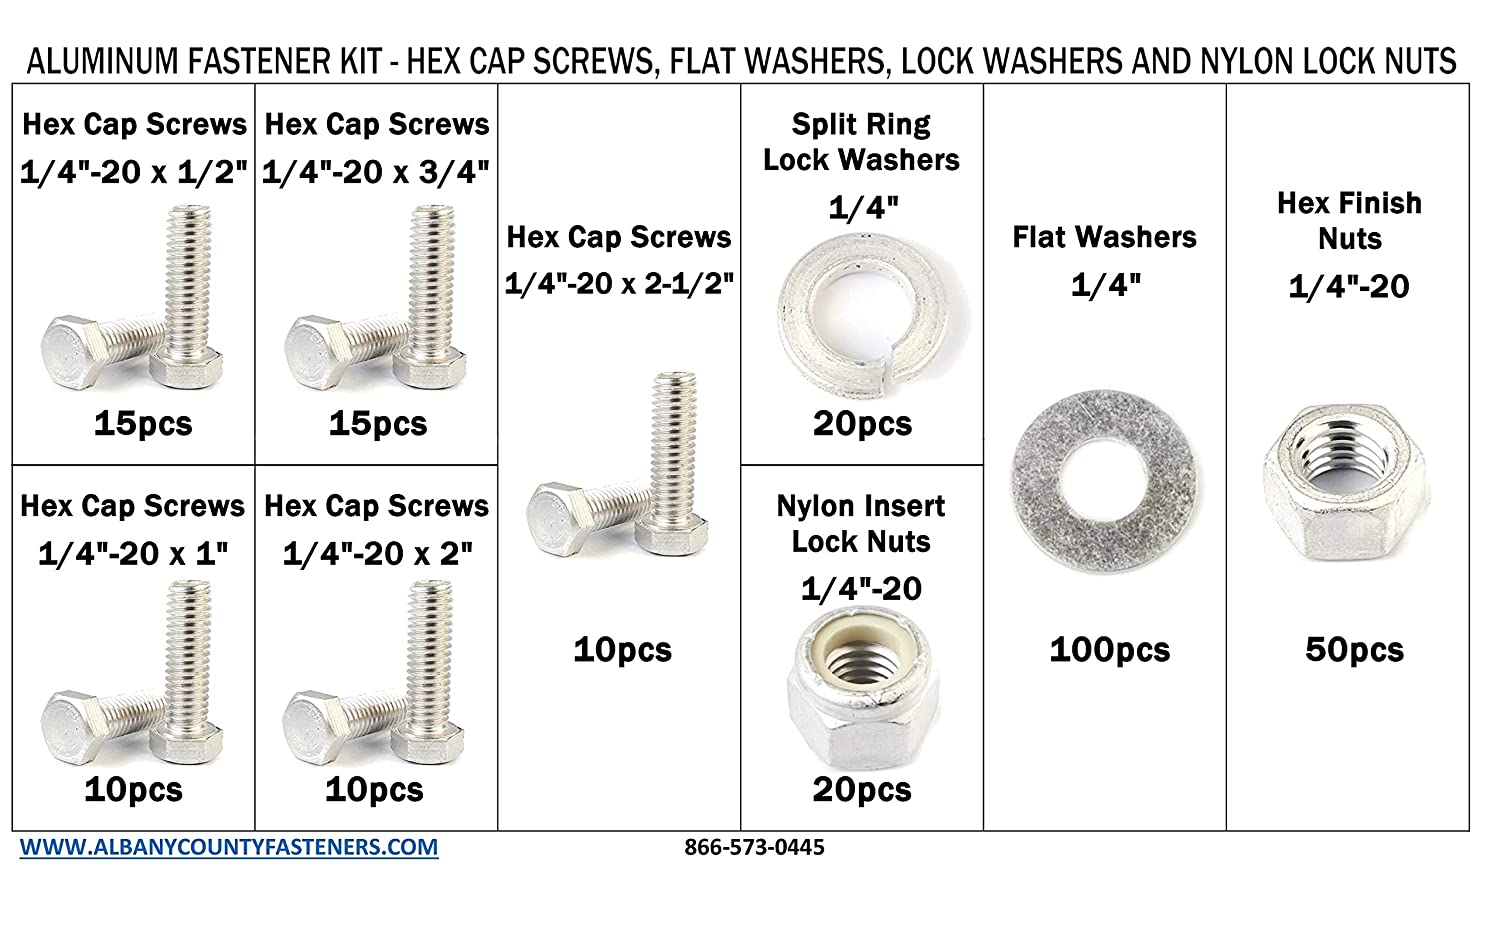 Lock Nuts Aluminum Hex Tap Bolt Kit with Matching Nuts Washers and Lock Washers 1//4-20-251 Pieces